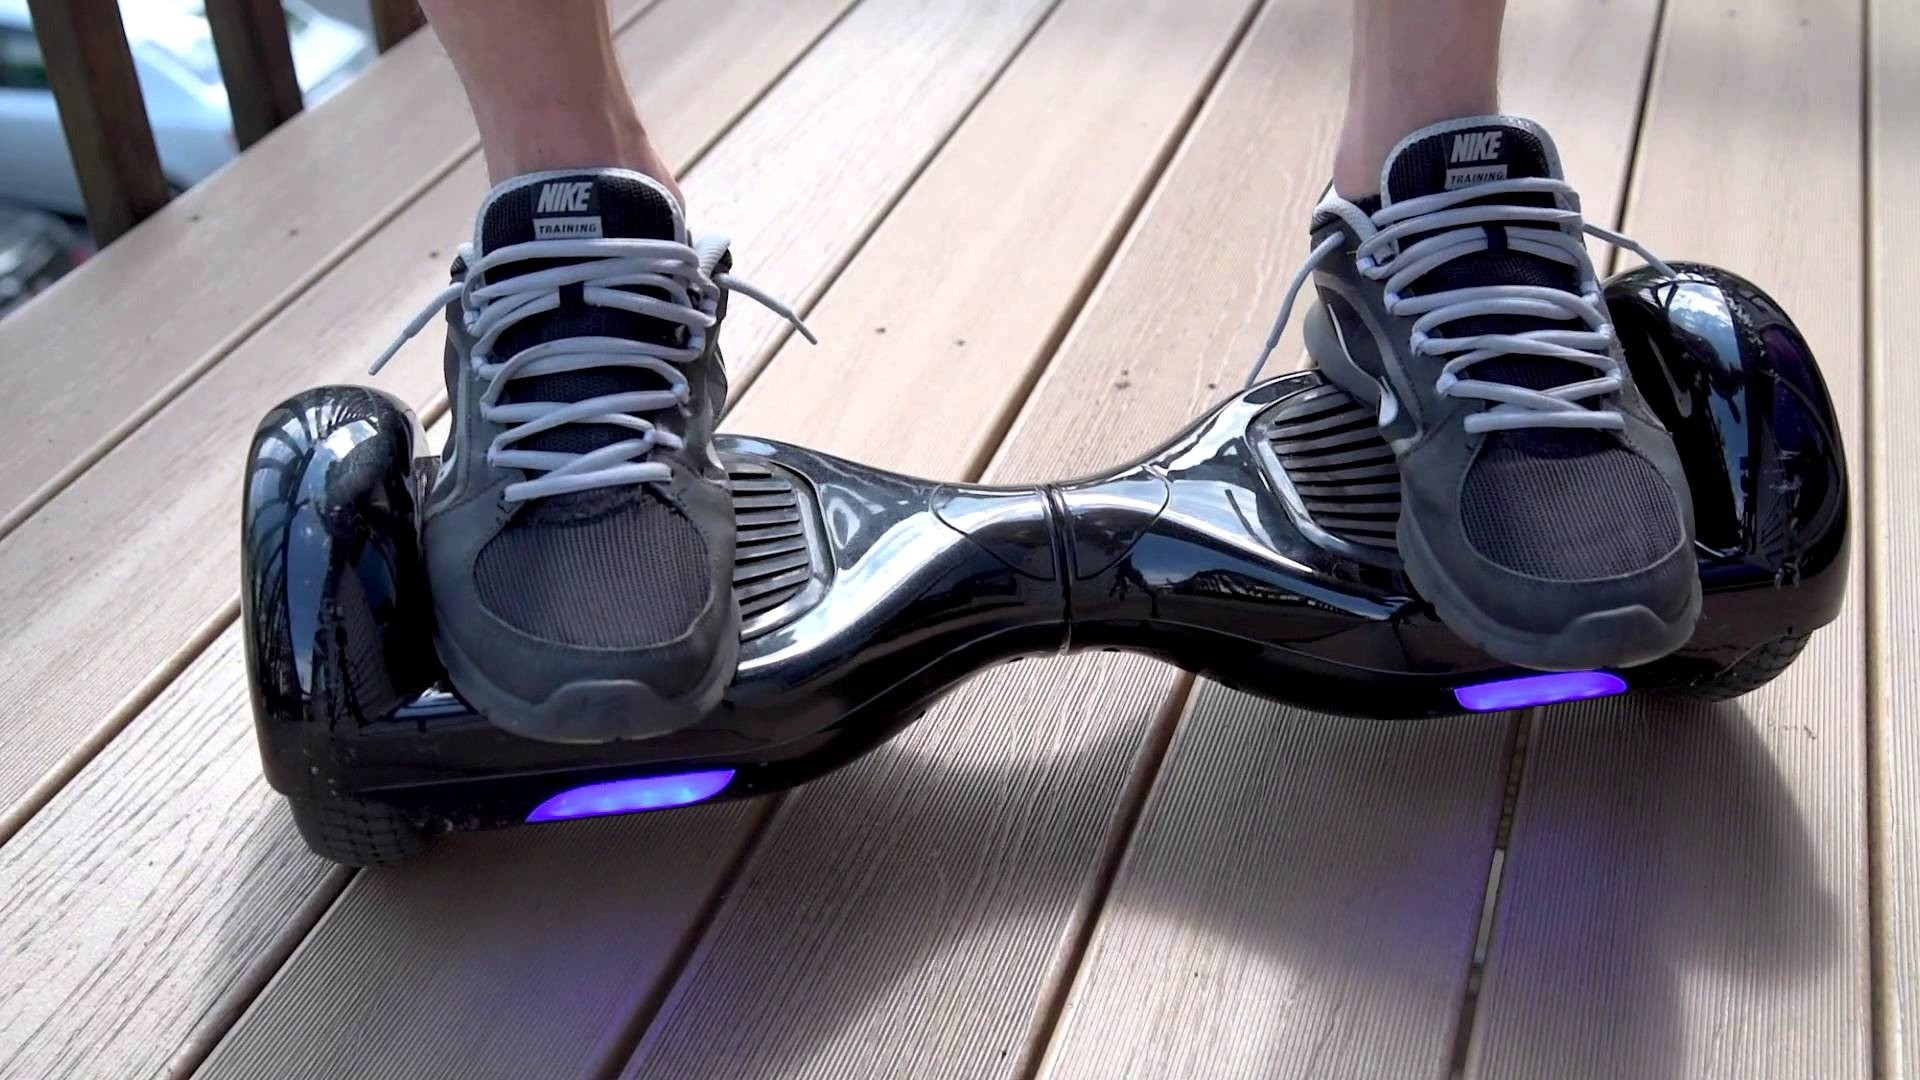 1920x1080 Hoverboard, Smart Scooter, Self Balancing, 2-wheel, Electric Scooter, Mini